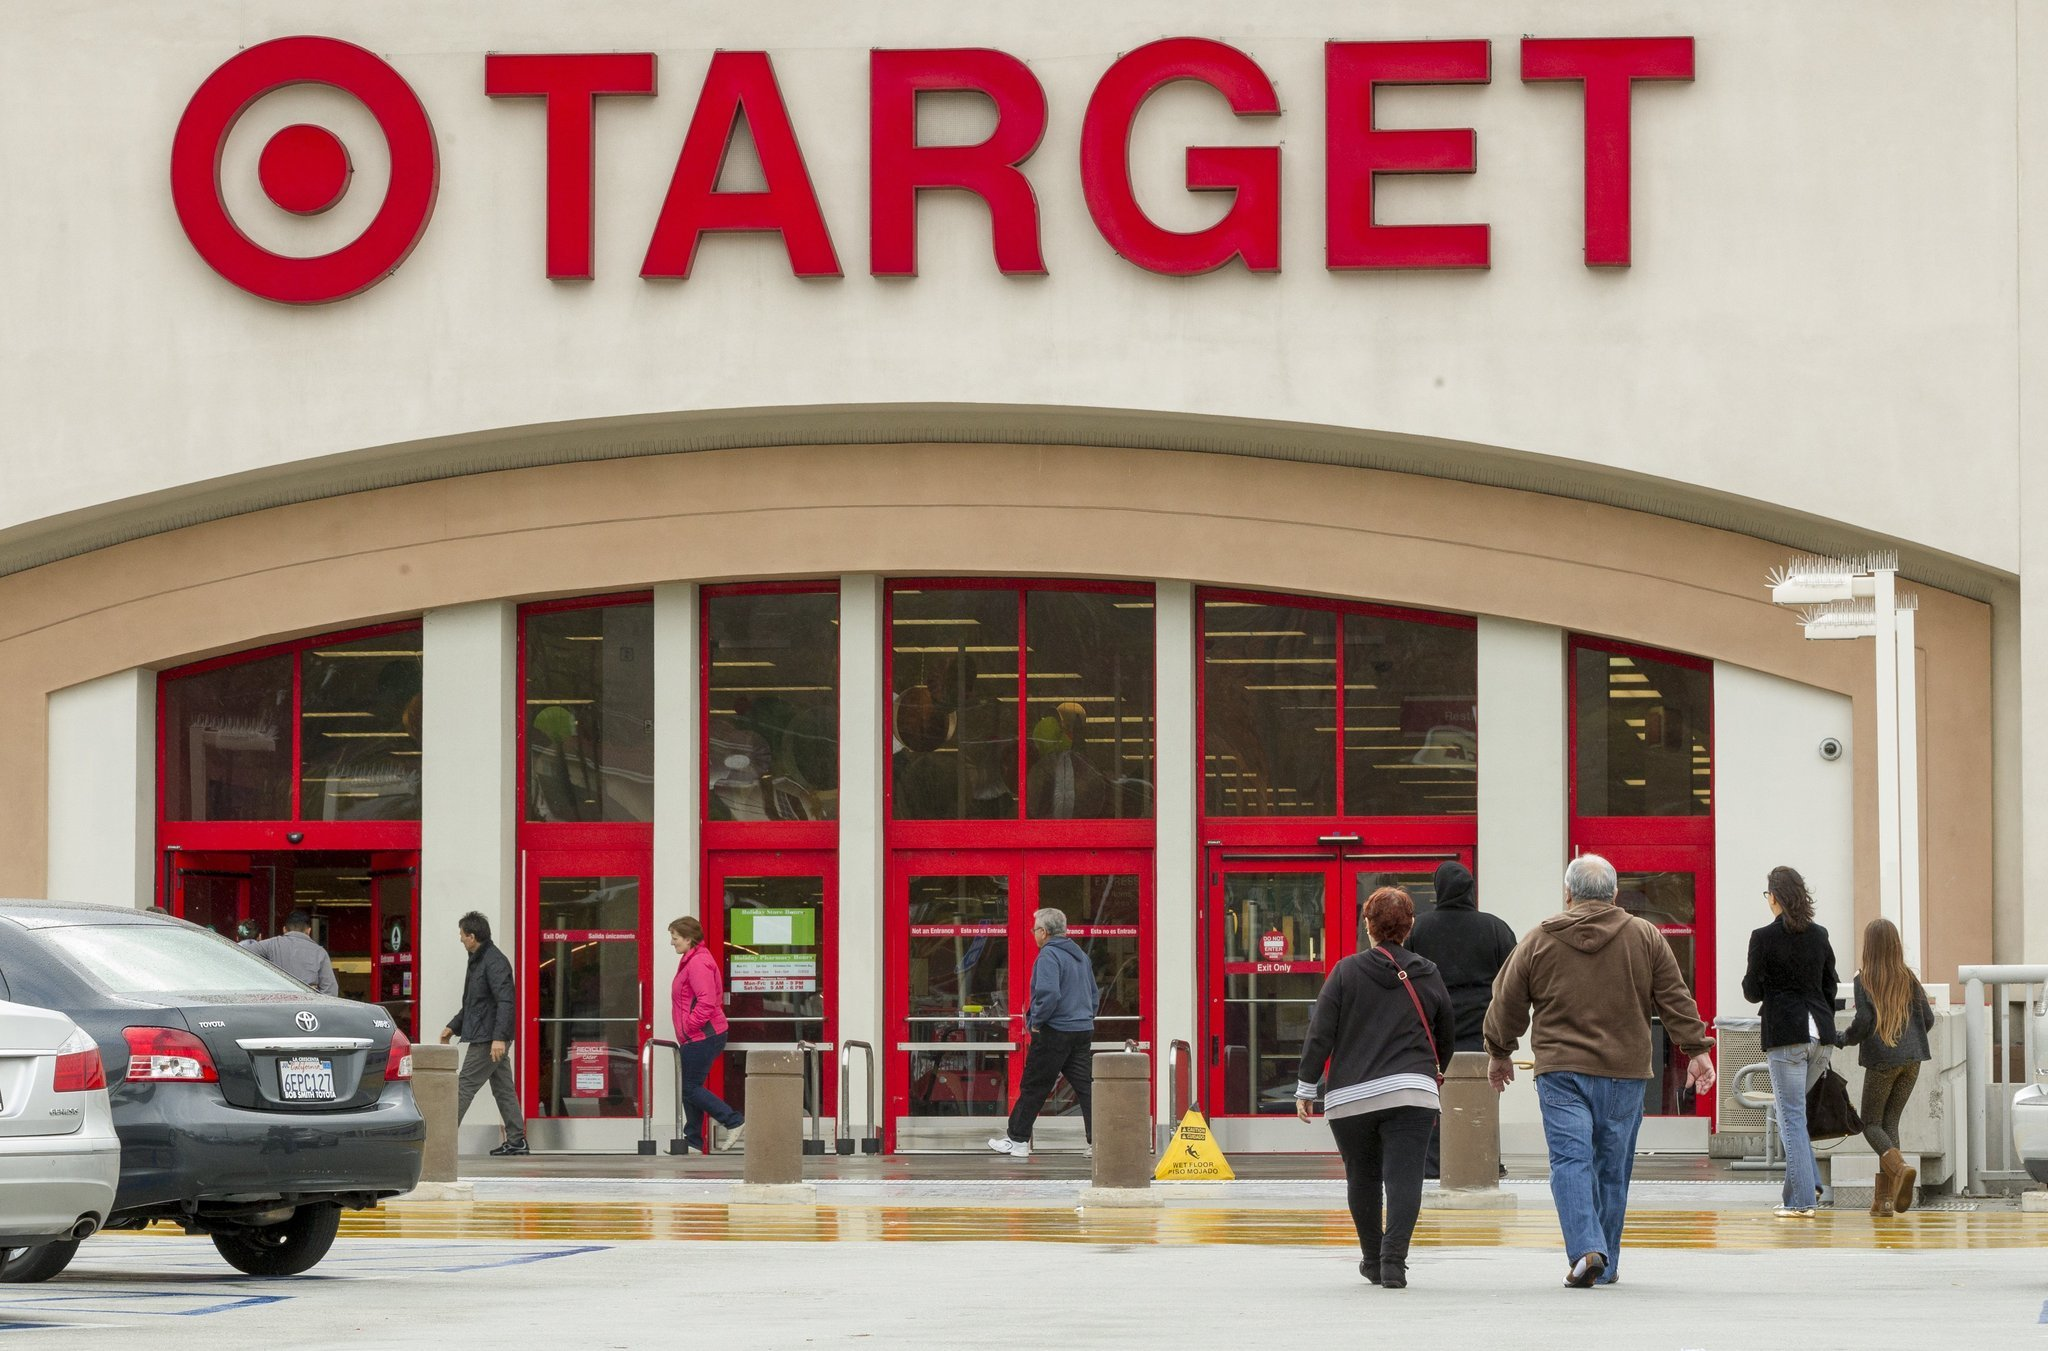 Target agrees to pay $10 million to settle data breach lawsuit